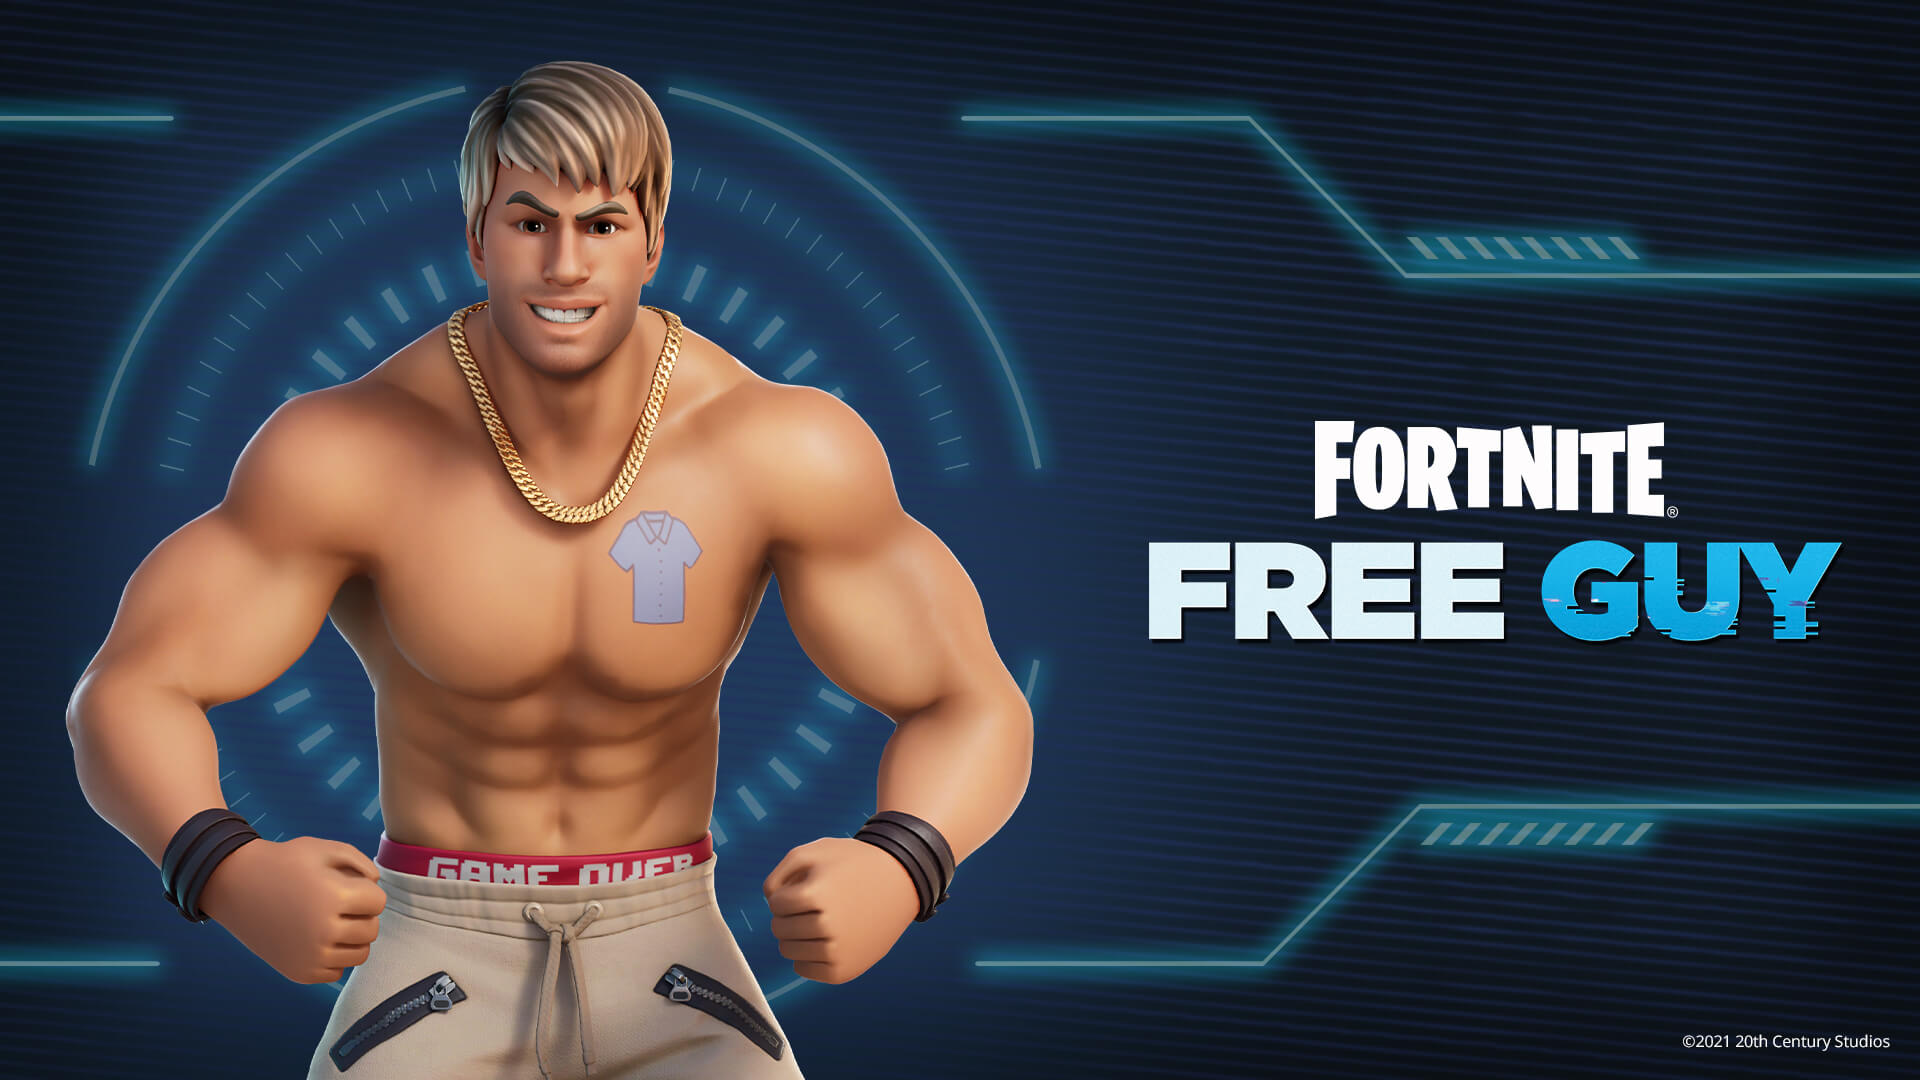 fortnite free guy challenges